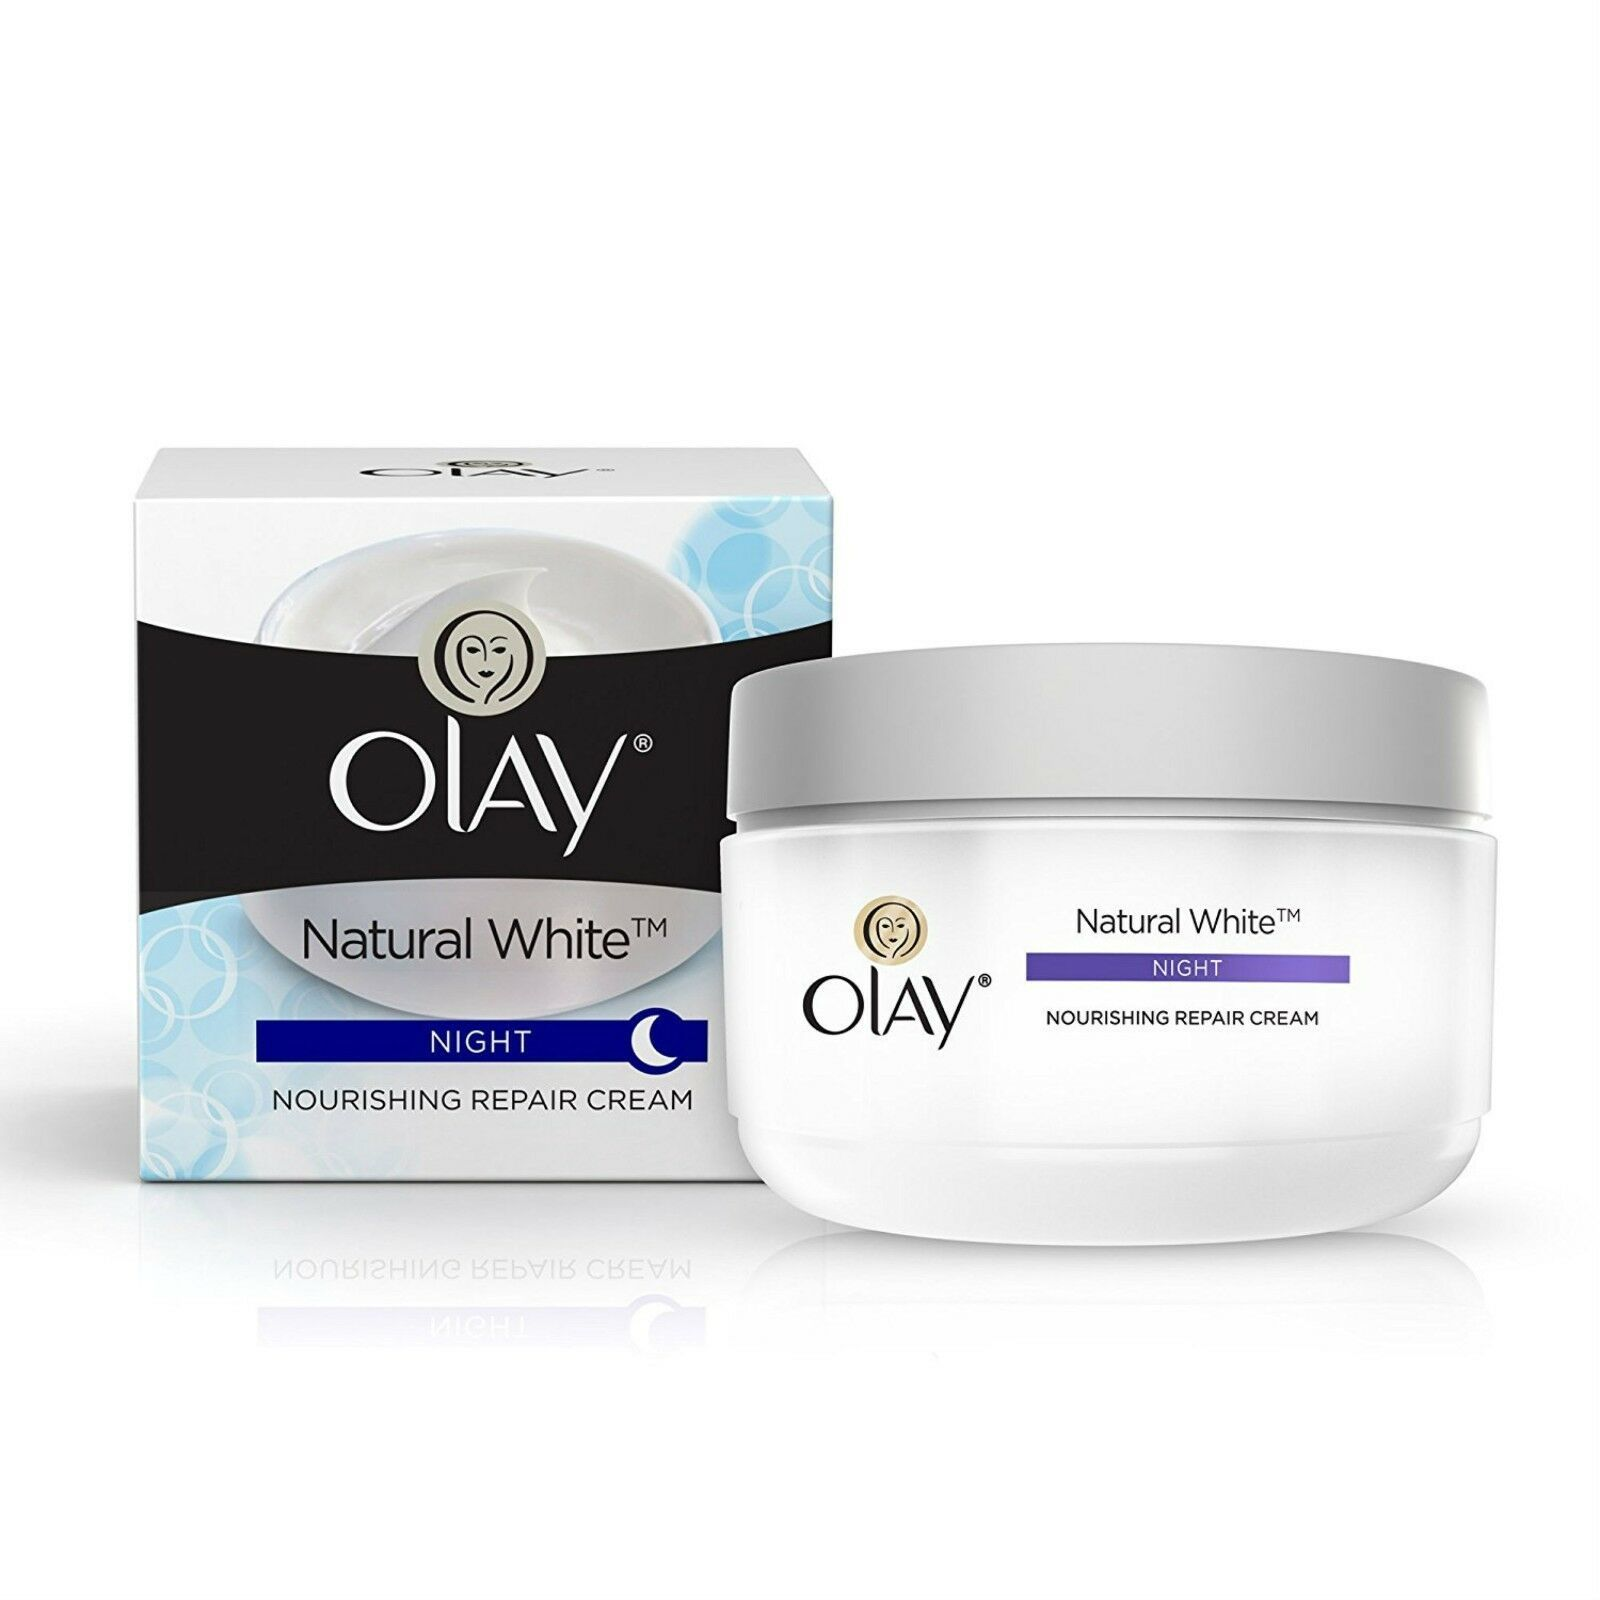 Primary image for Olay Natural White All in One Nourishing repair Skin Cream, 50g